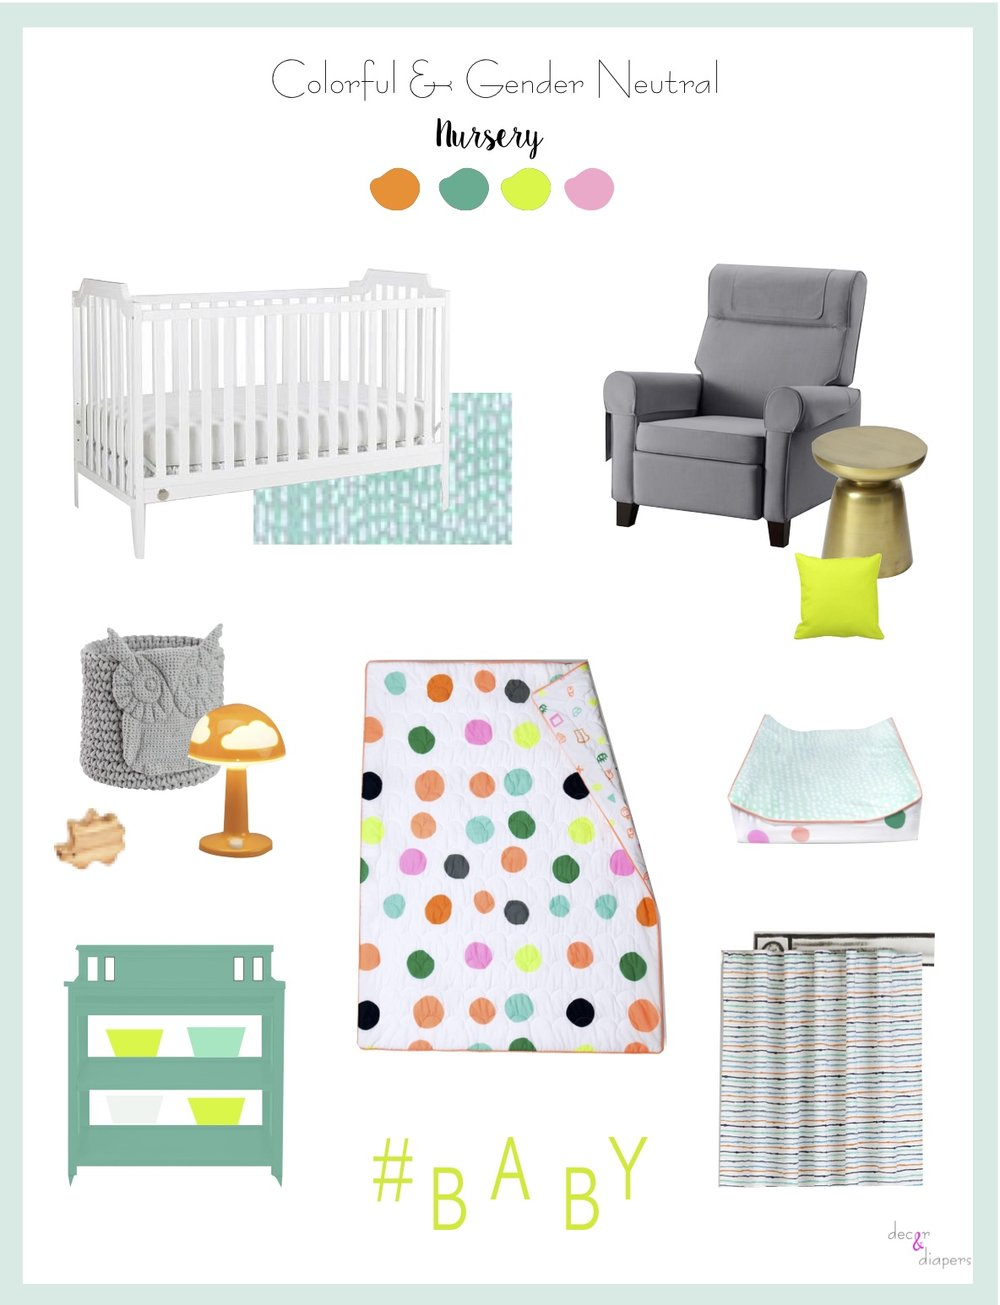 How to Regsiter for a Colorful Gender Neutral Nursery